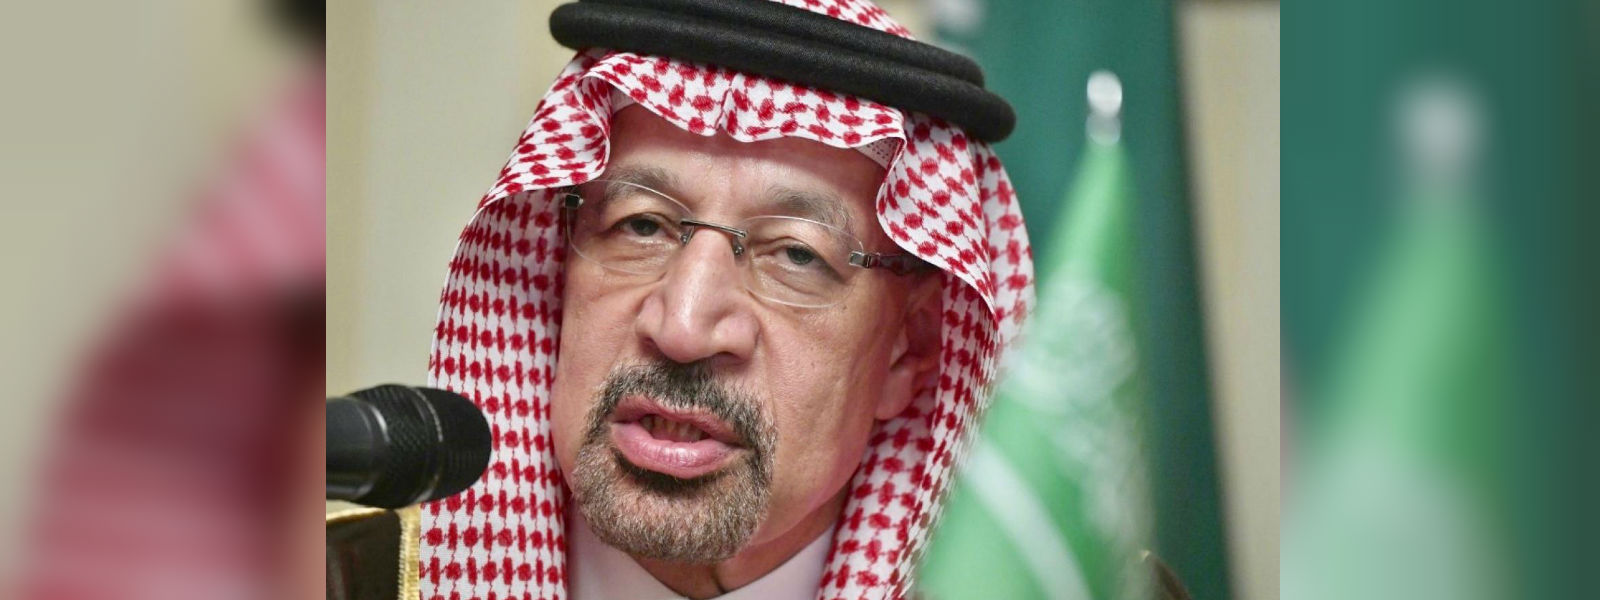 Saudi oil minister says country showed resilience, is proud of Aramco